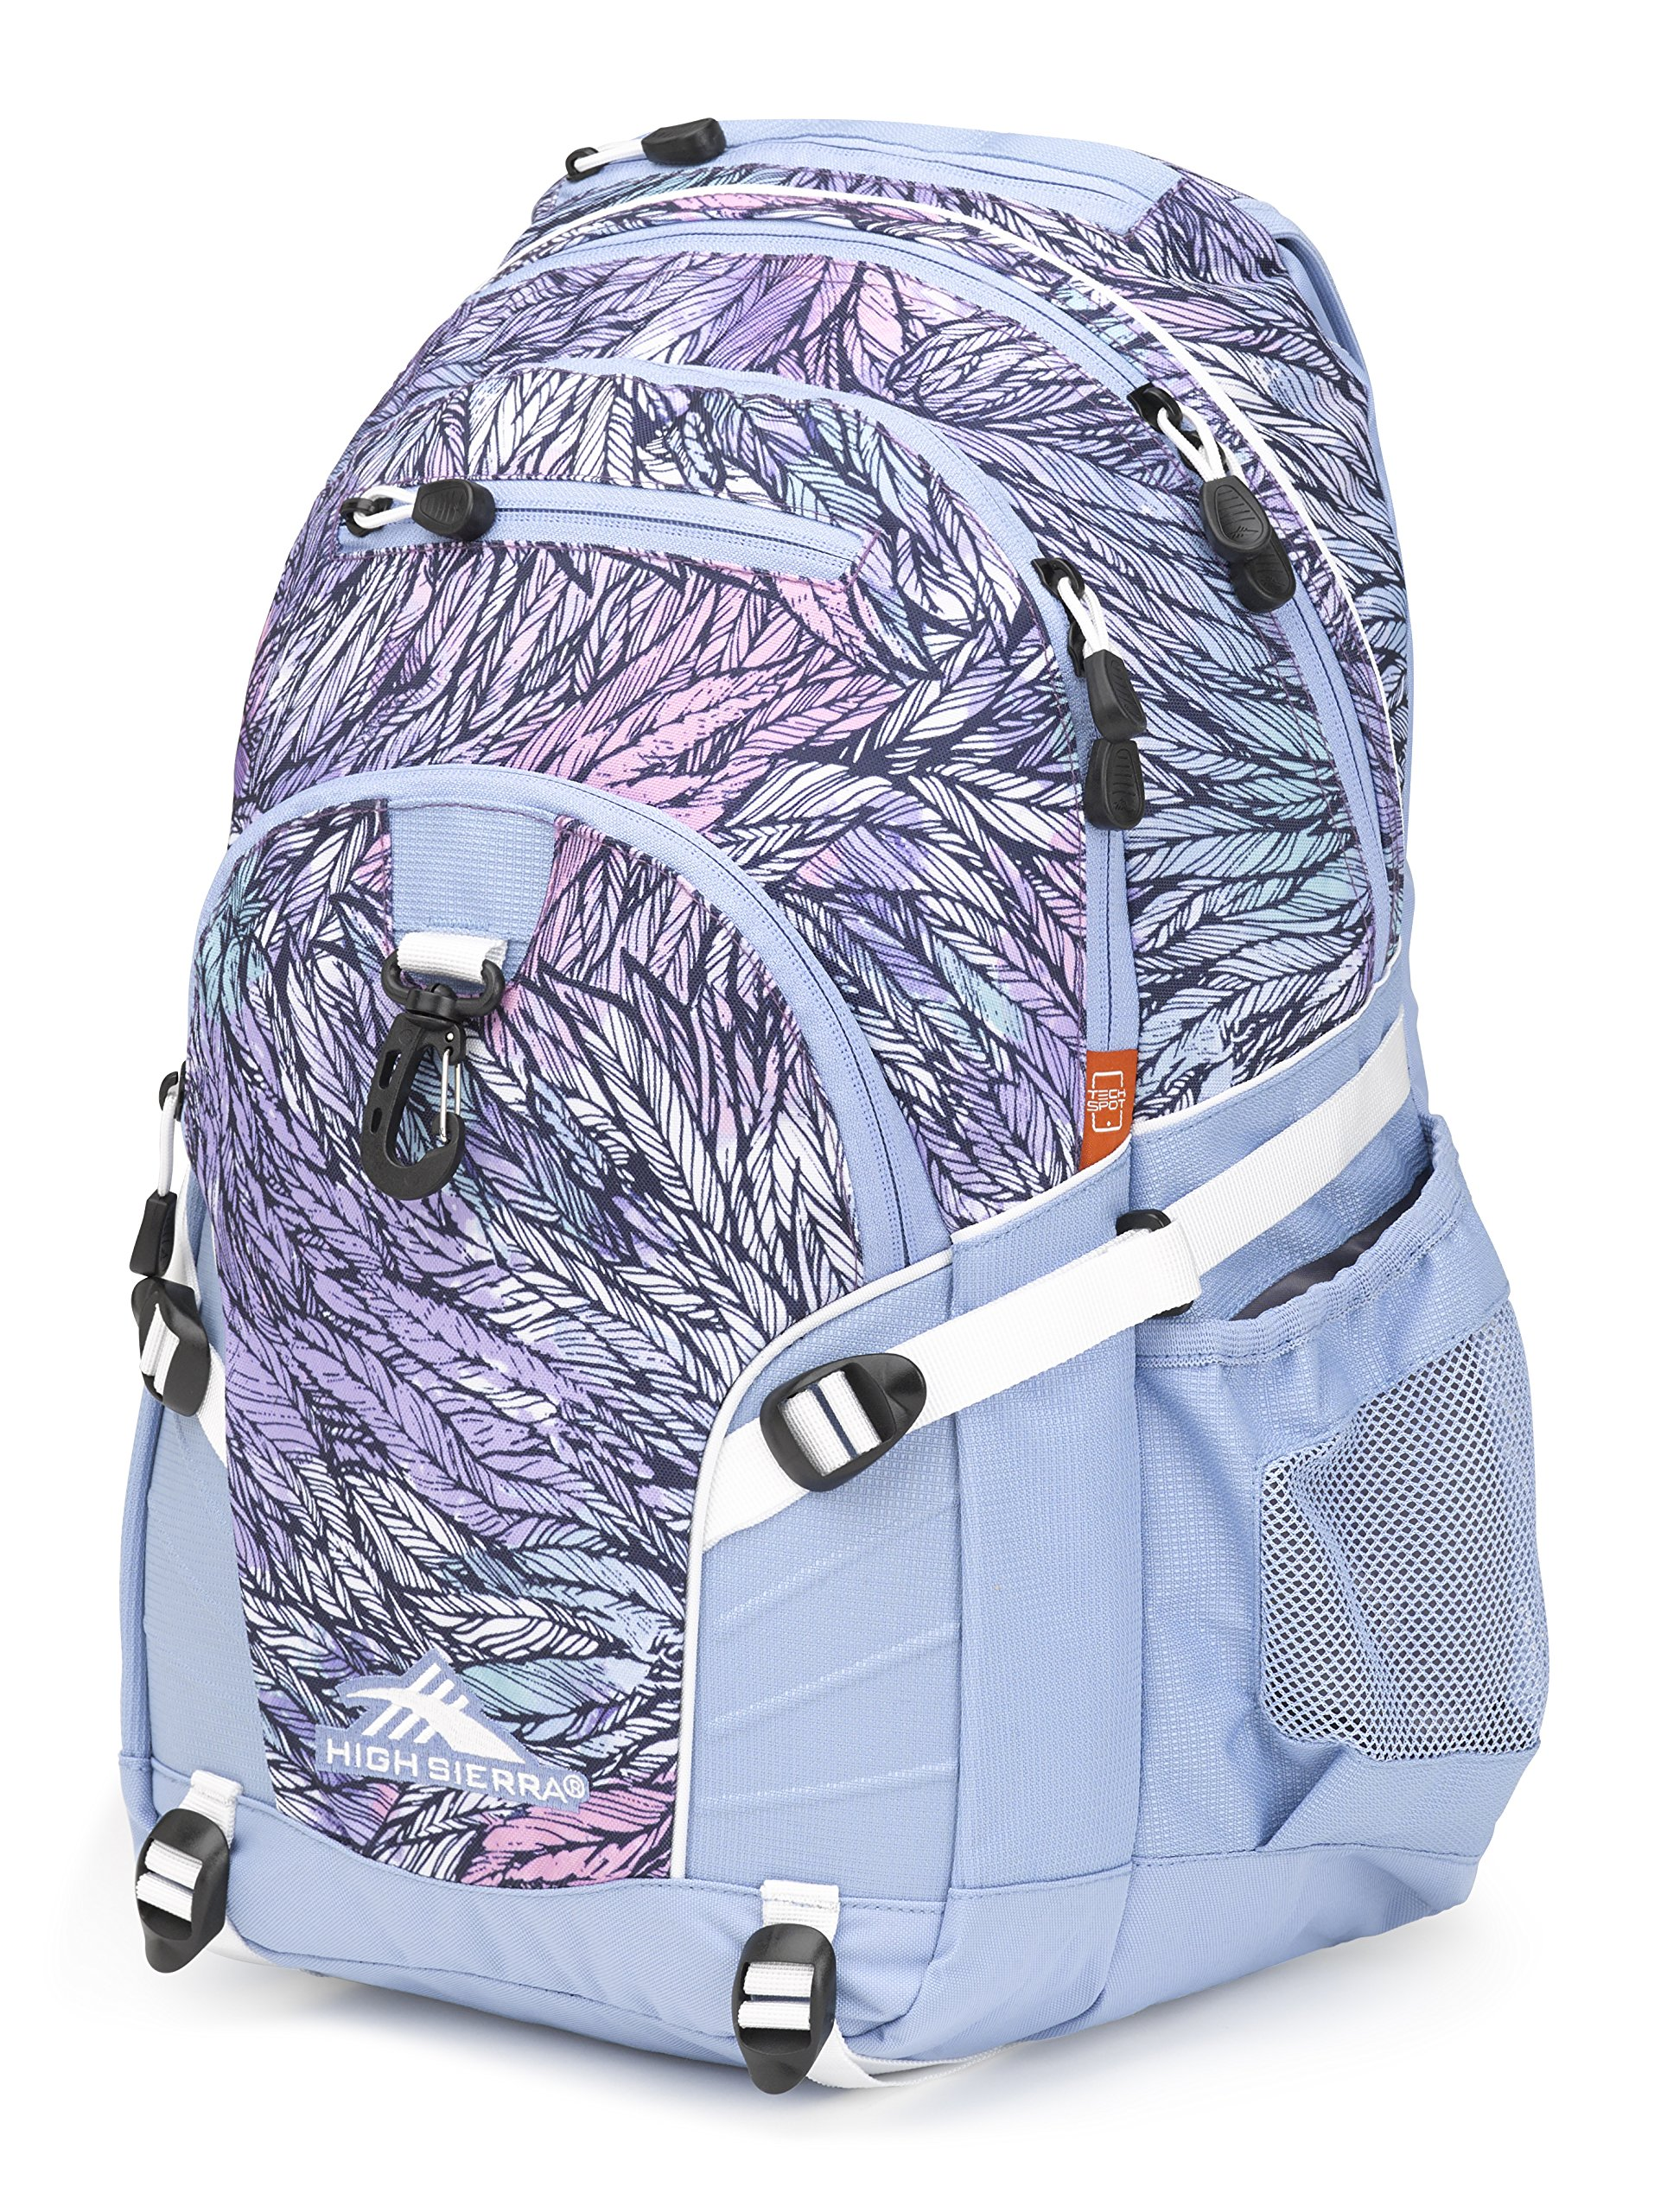 High Sierra Loop Backpack, Feather Spectre/Powder Blue/White by High Sierra